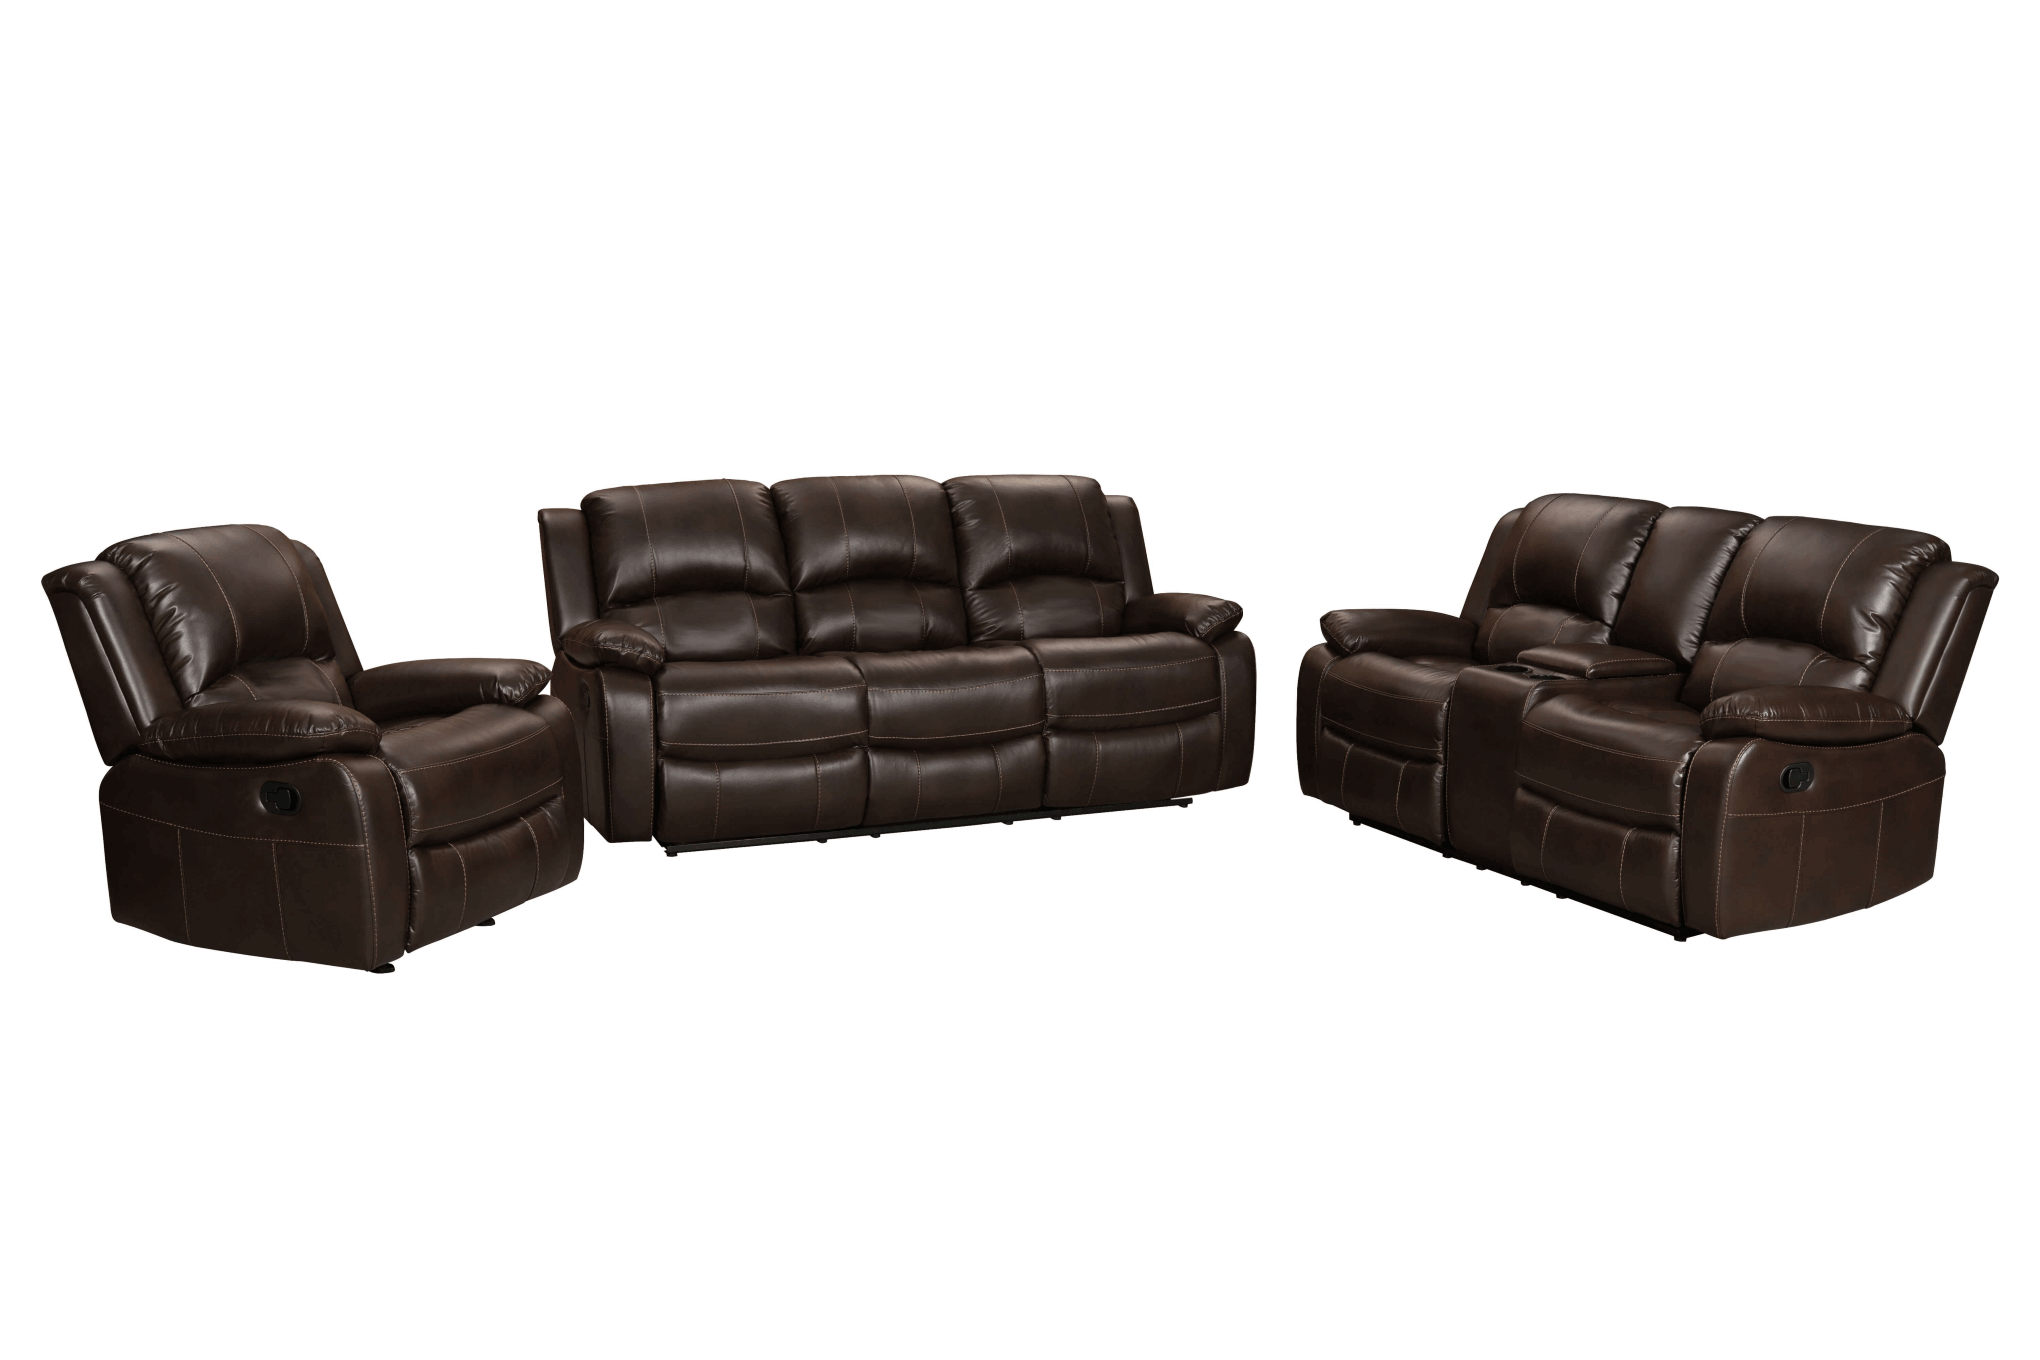 Brown Sofa And Loveseat Sets 3333 Brown Reclining Sofa Loveseat Set